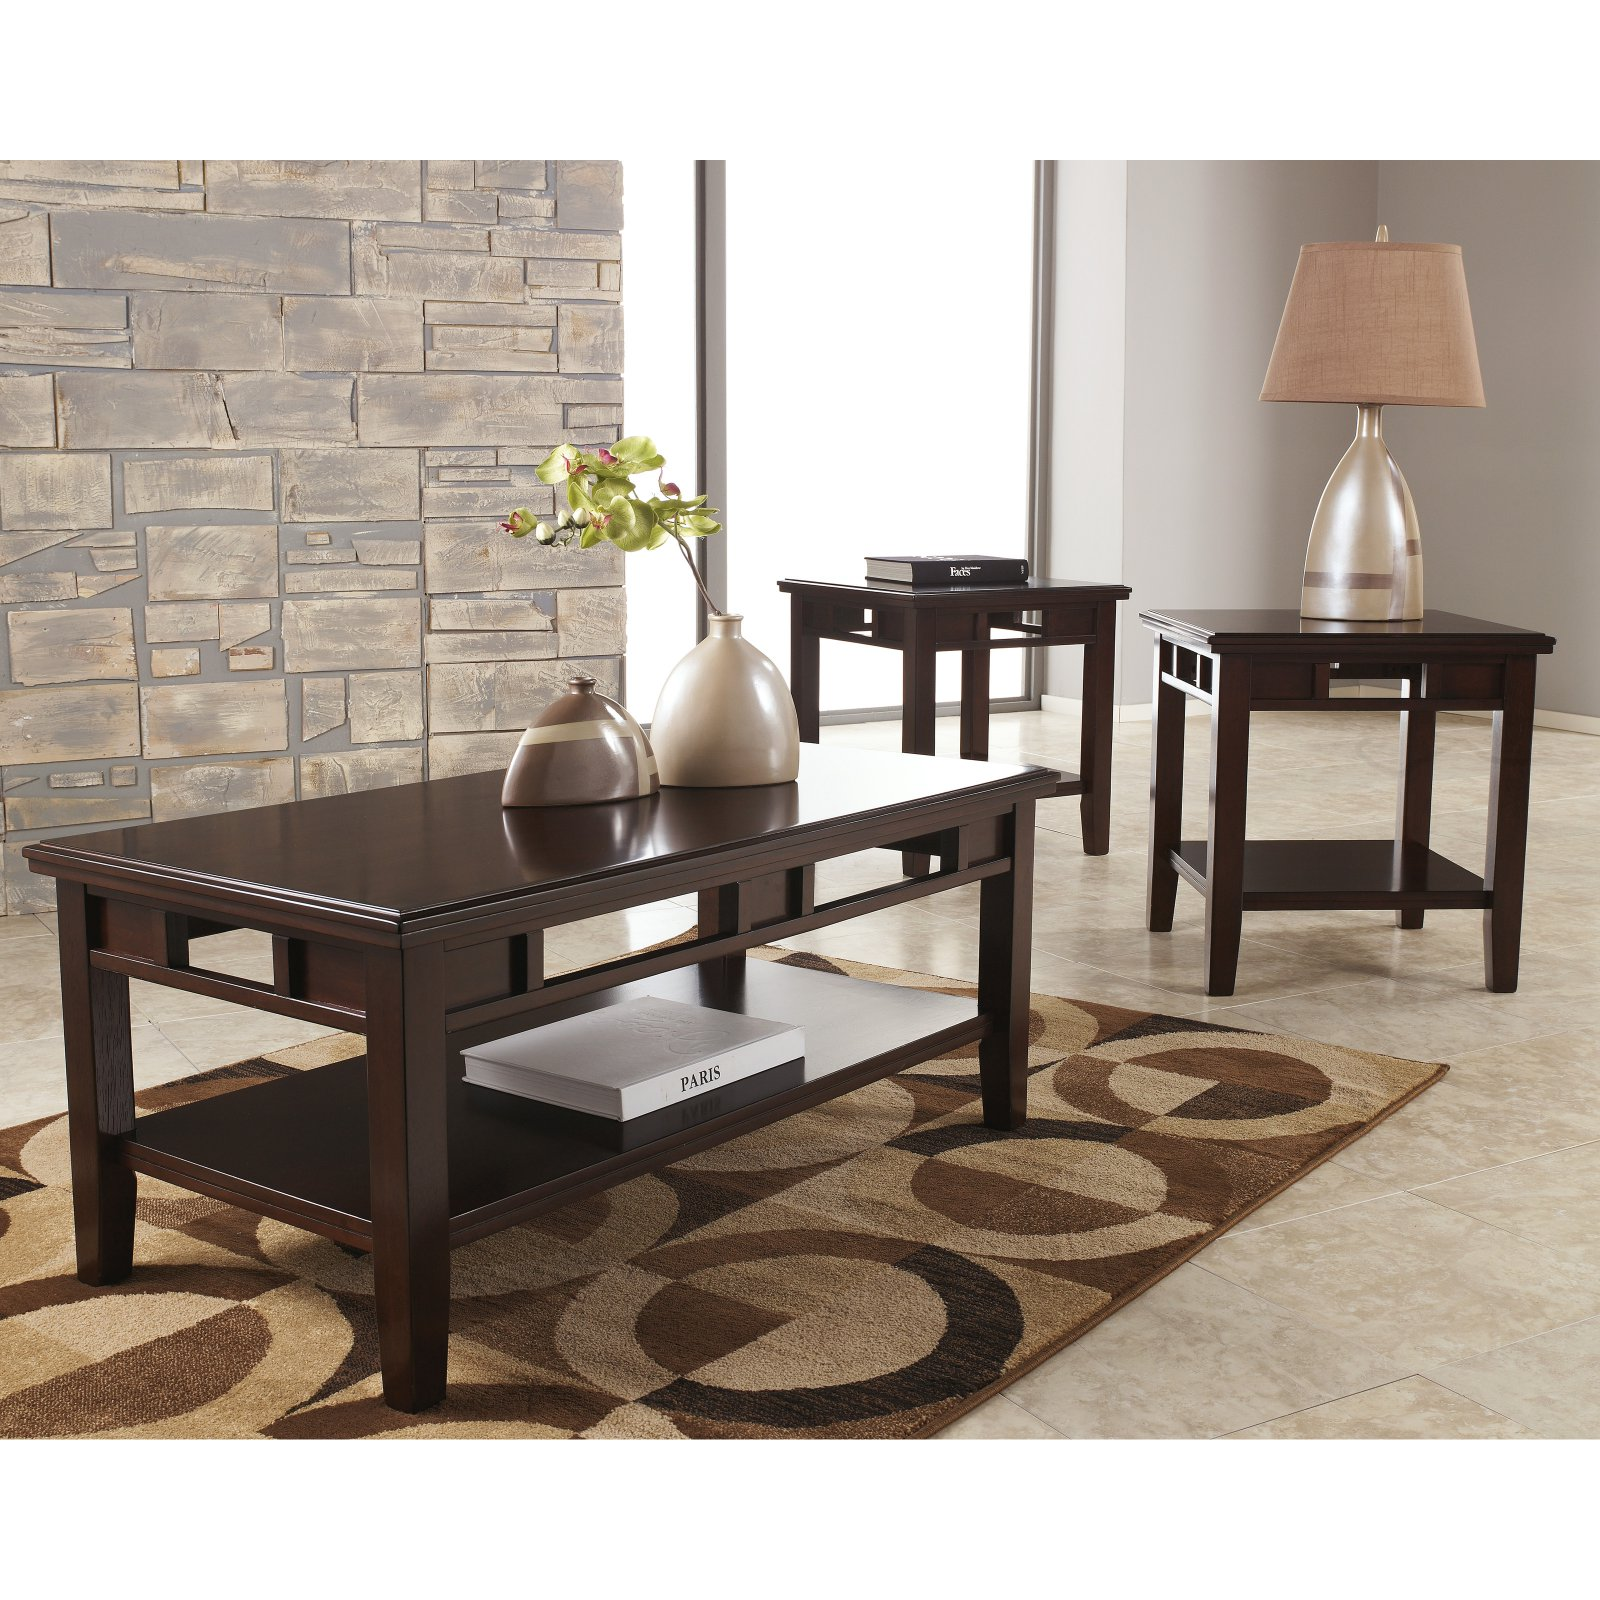 Wonderful Signature Design By Ashley Logan 3 Piece Coffee Table Set